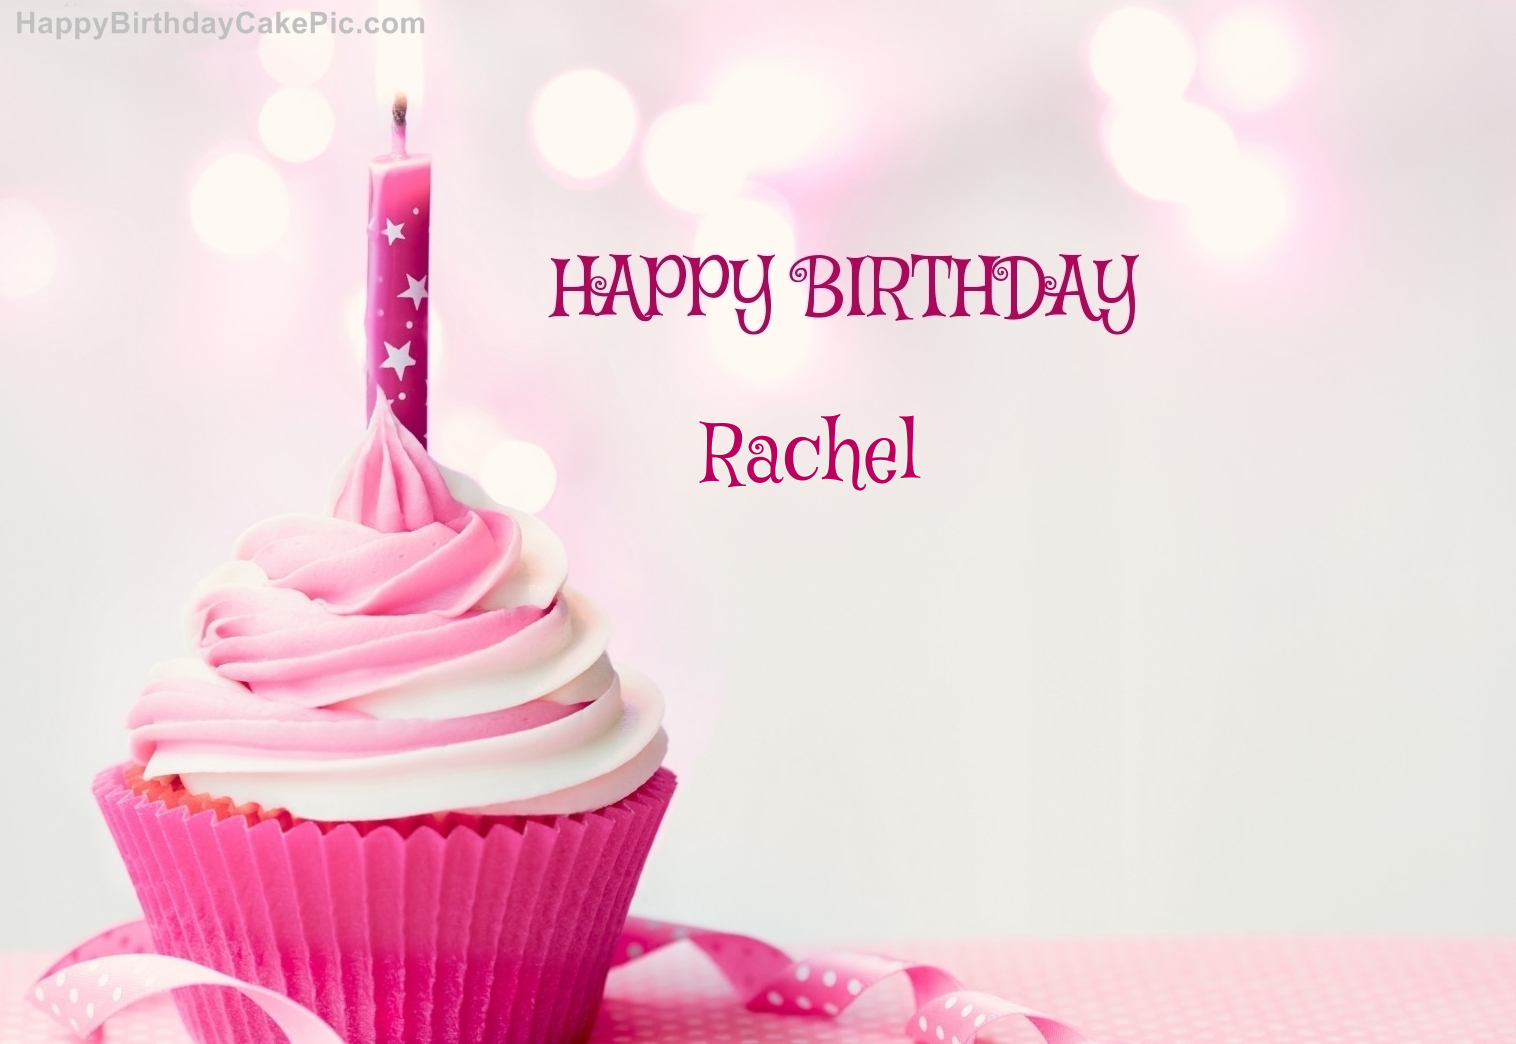 Happy Birthday Cupcake Candle Pink Cake For Rachel